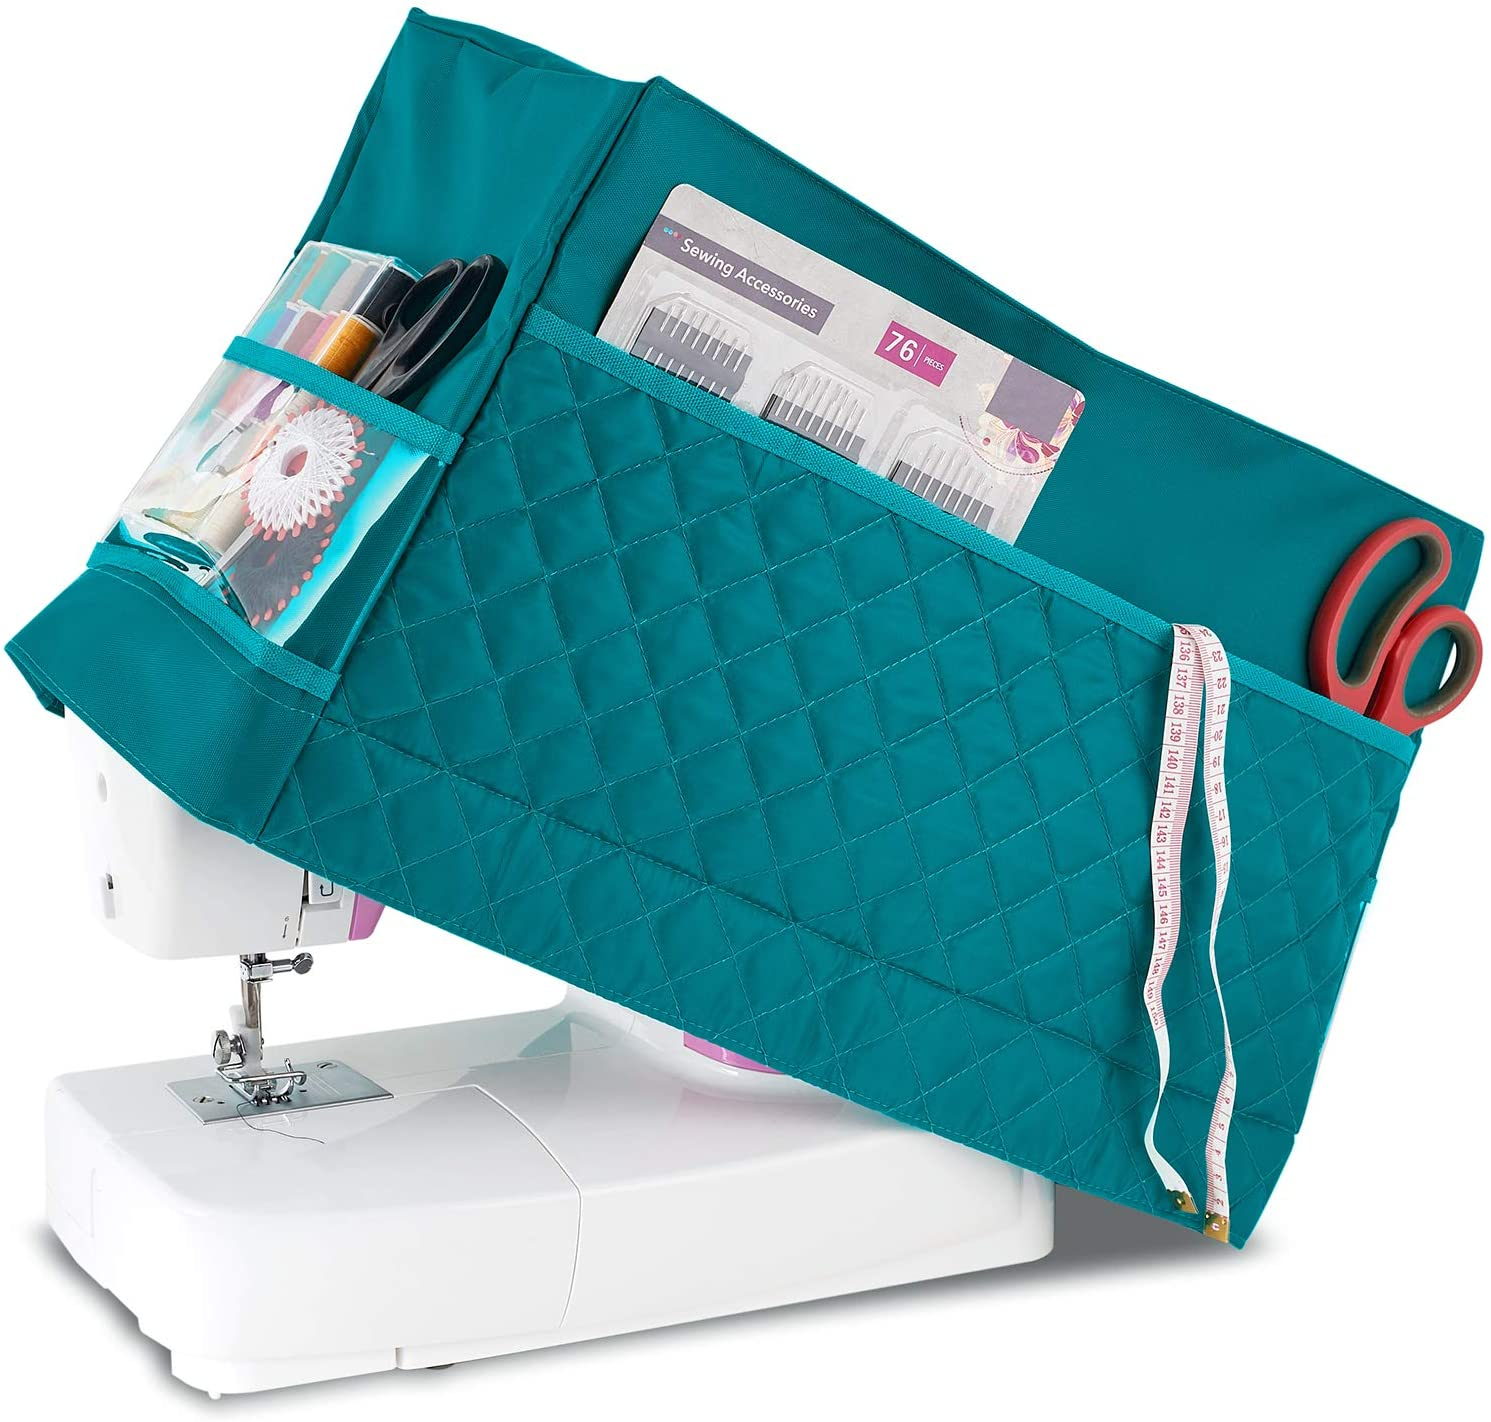 Protective Dust Cover with Pockets for Sewing Machine Clear Plastic